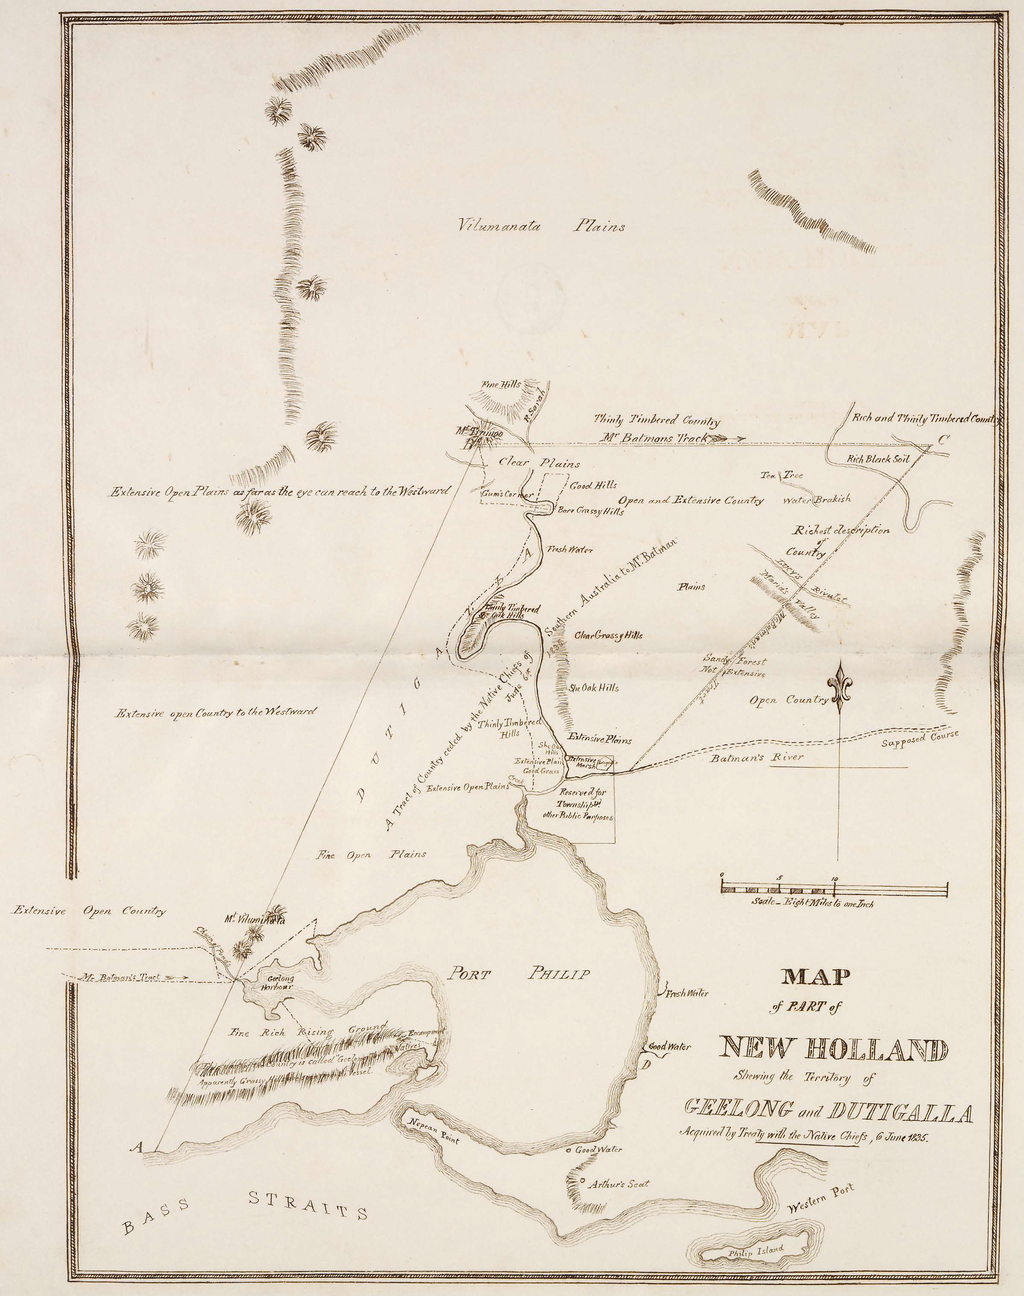 Map of part of New Holland showing the territory of Geelong and Dutigalla